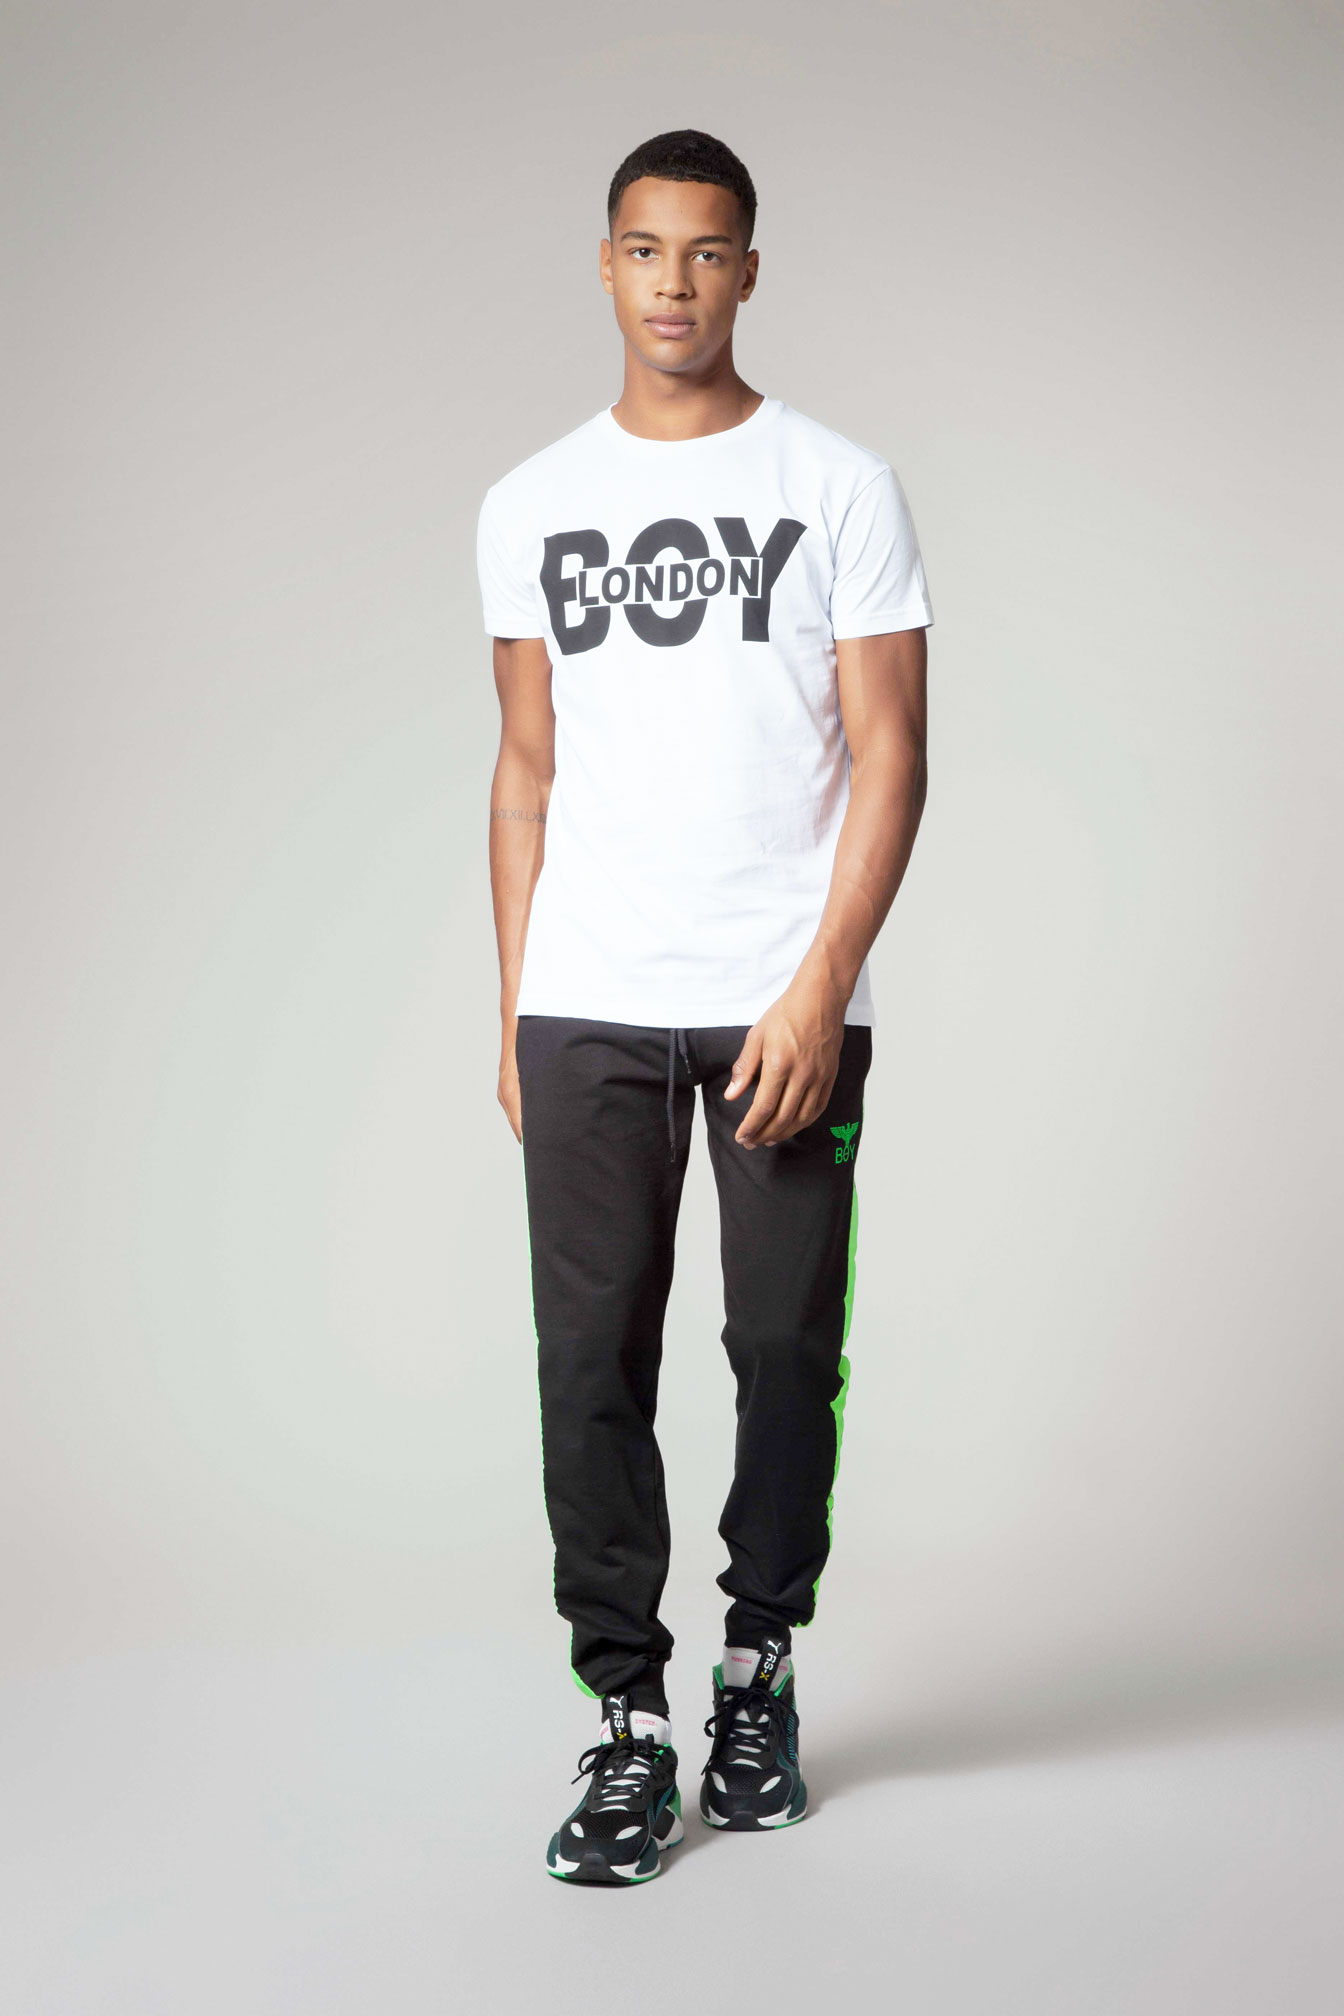 T-SHIRT - BLU6509 - BOY LONDON